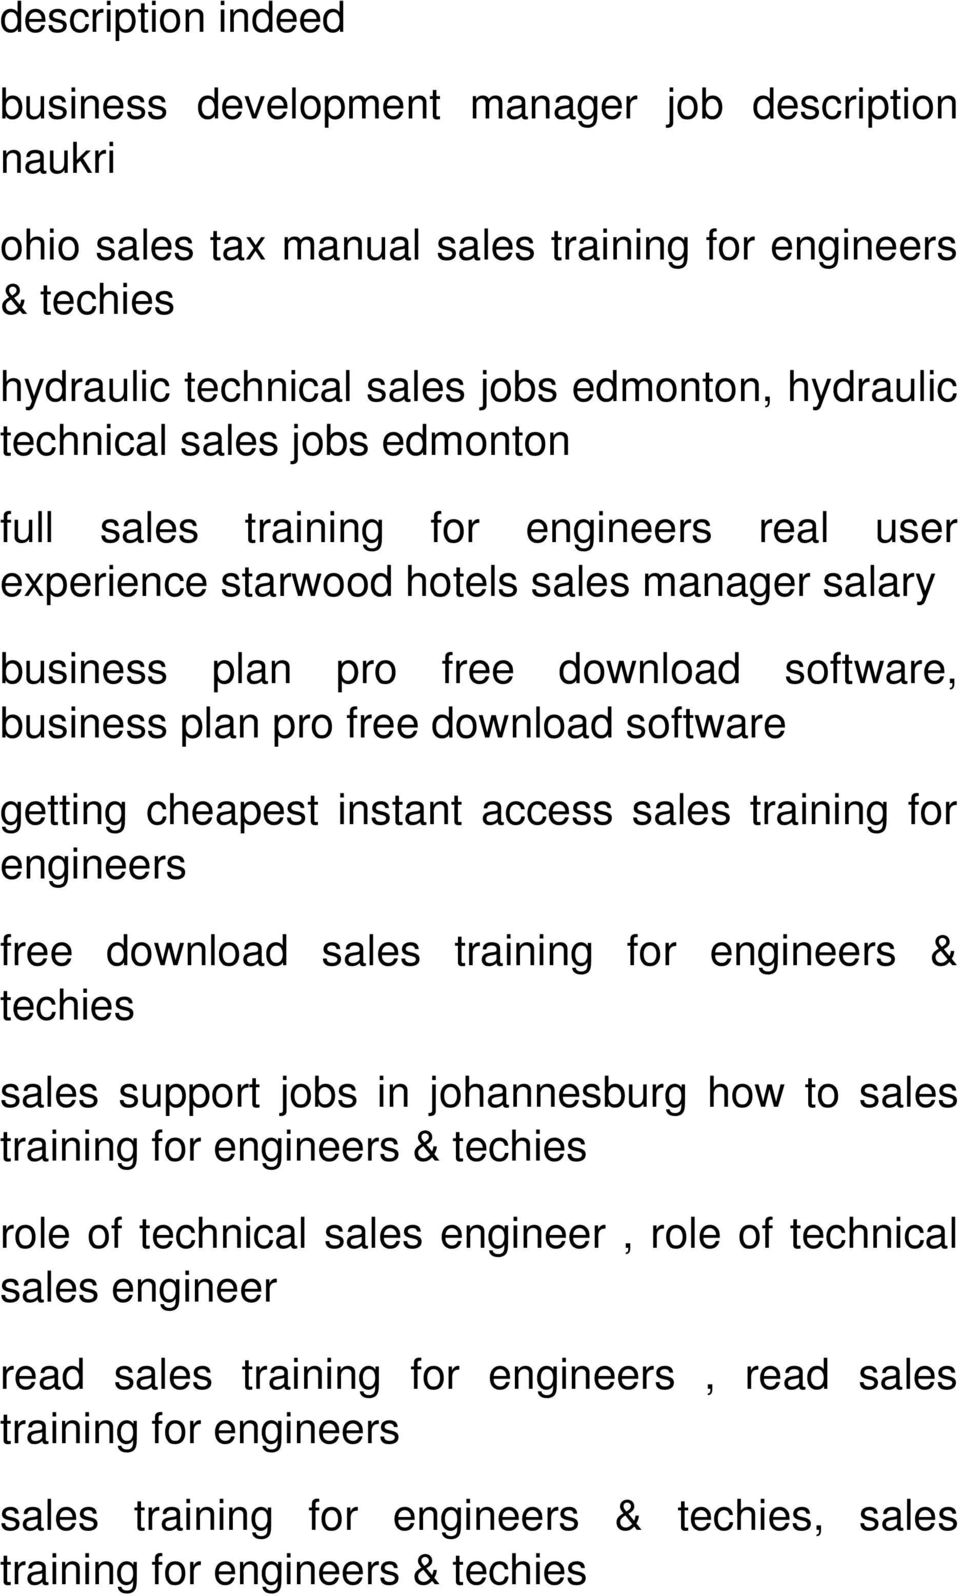 business plan pro free download software getting cheapest instant access sales training for engineers free download sales & techies sales support jobs in